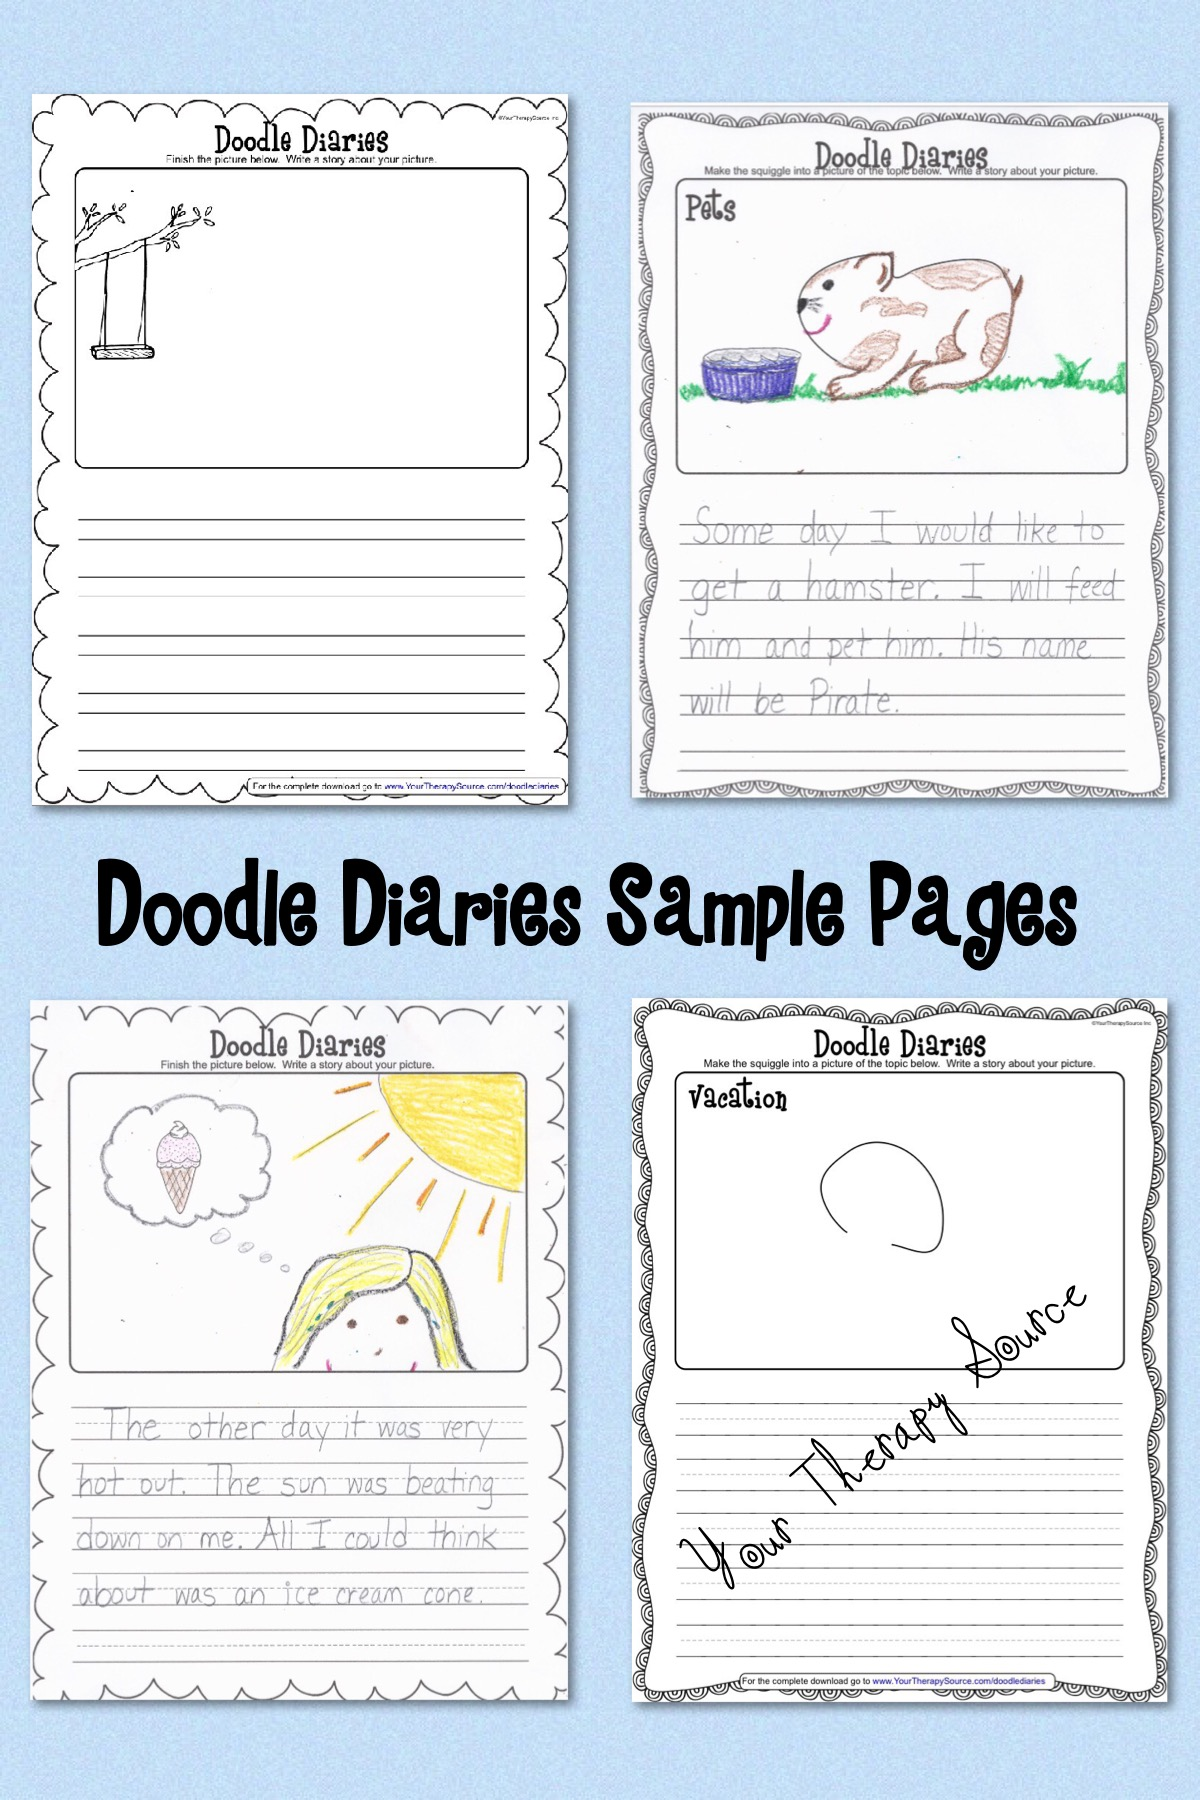 doodle diaries sample pages from https://yourtherapysource.com/doodlediariesfree.html